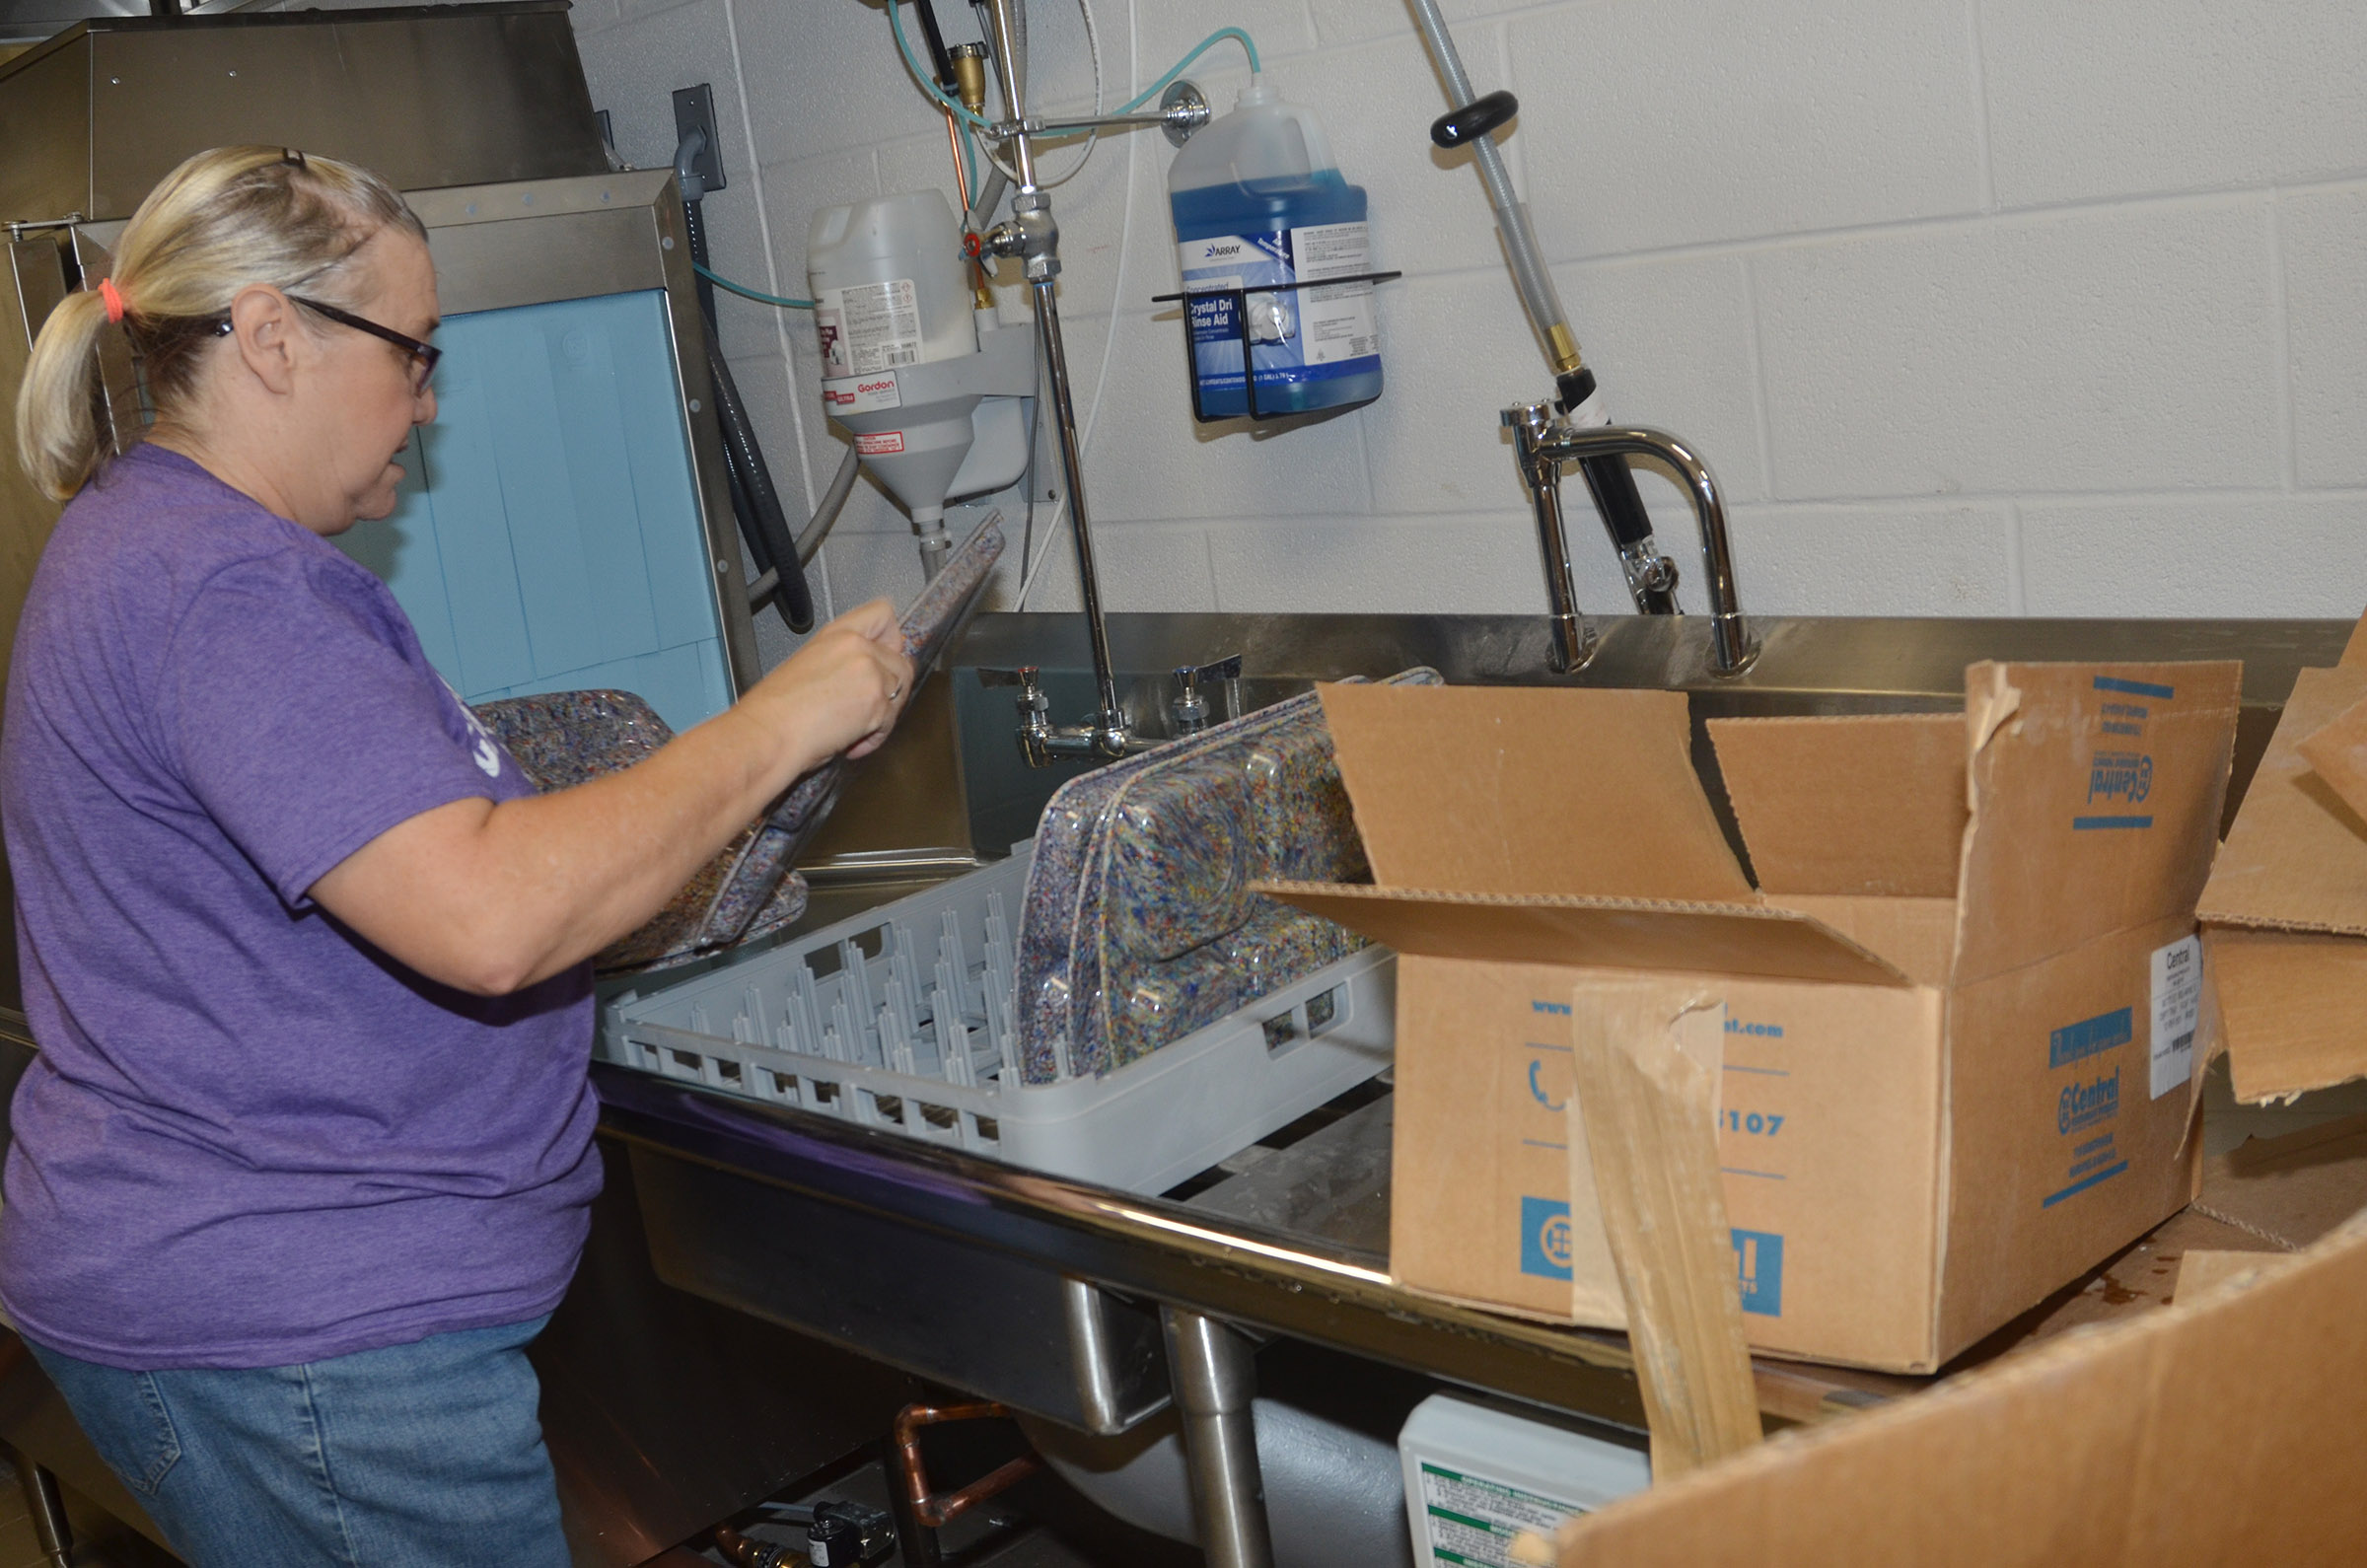 CES cafeteria worker Anita Haulk washes new trays.